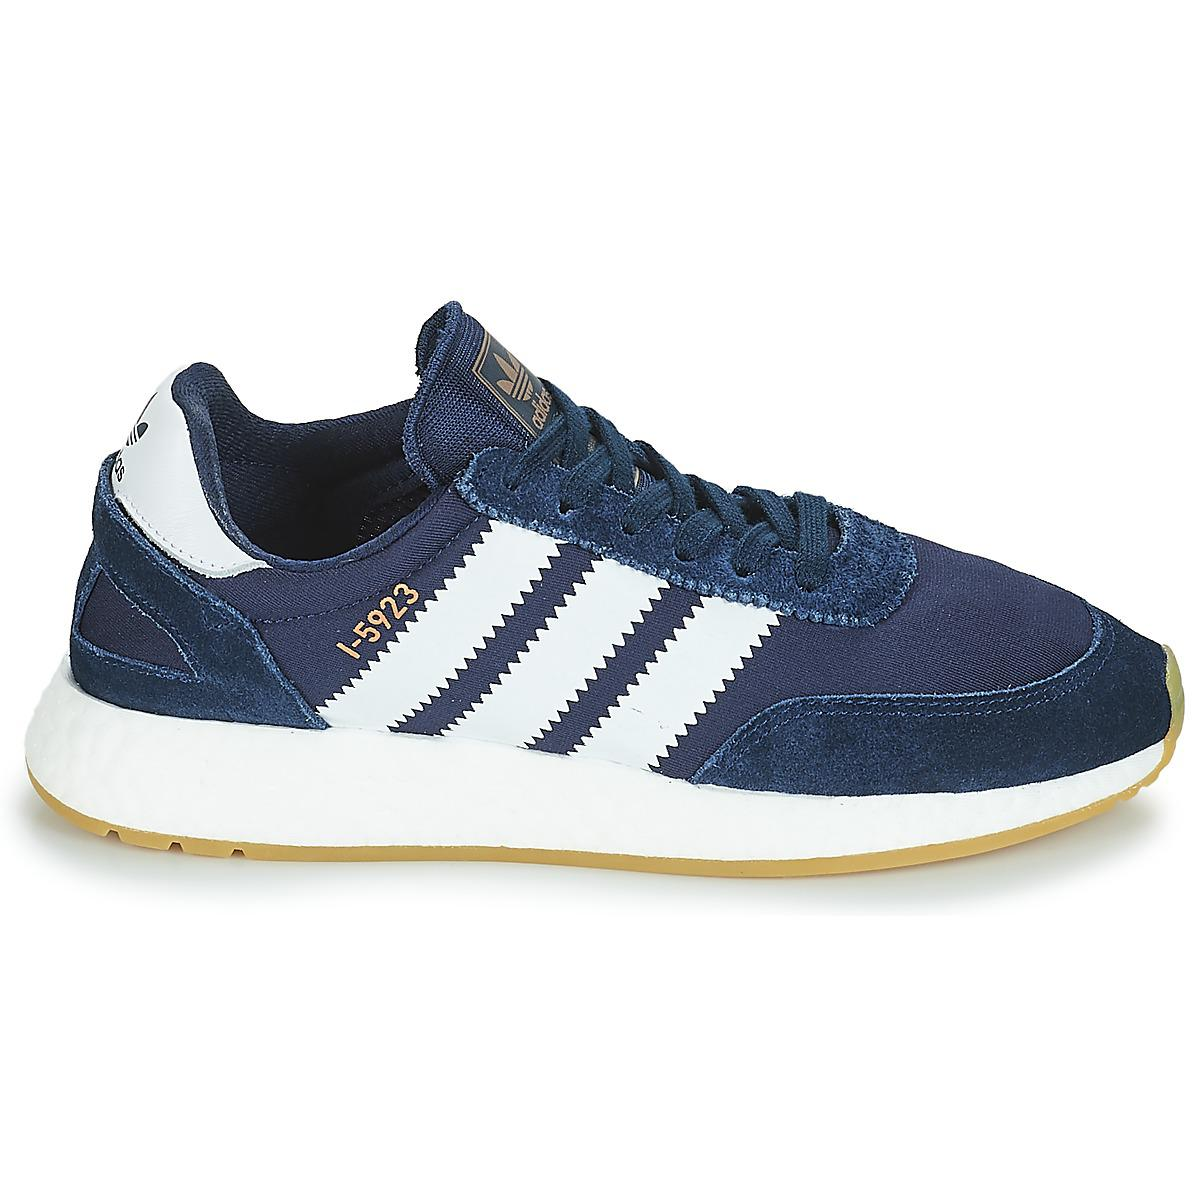 new style 92795 f375f Adidas - Blue I-5923 Mens Shoes (trainers) In Multicolour for Men -. View  fullscreen